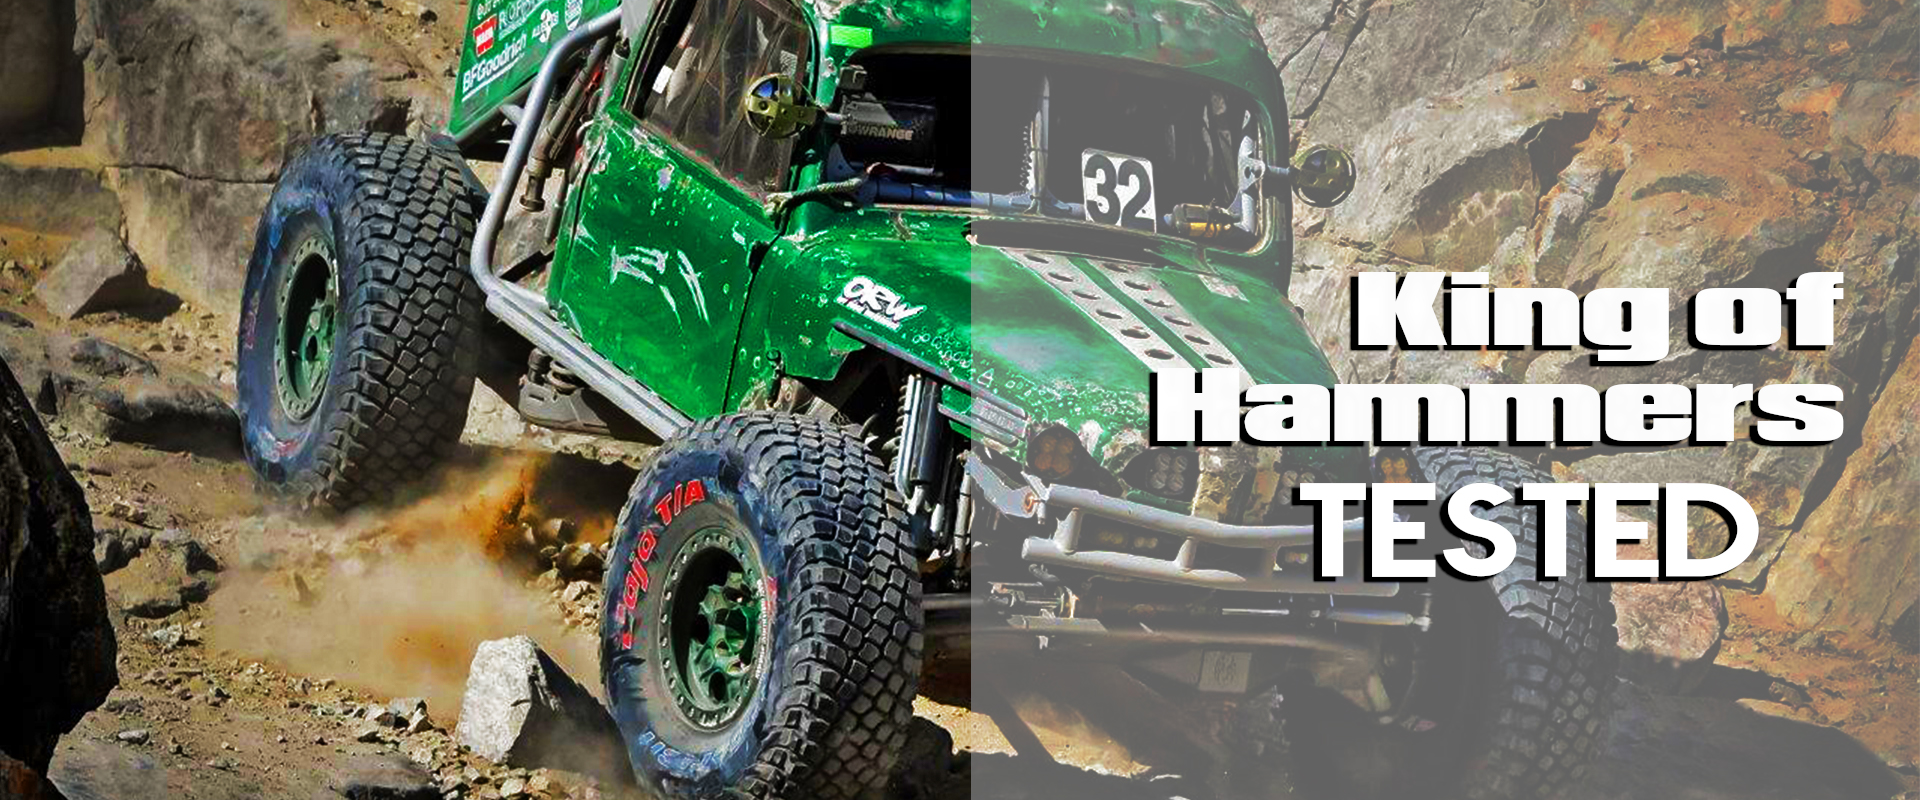 SMT-American-Forged-Off-Road-Truck-Wheels-King-of-hammers-Site Banner